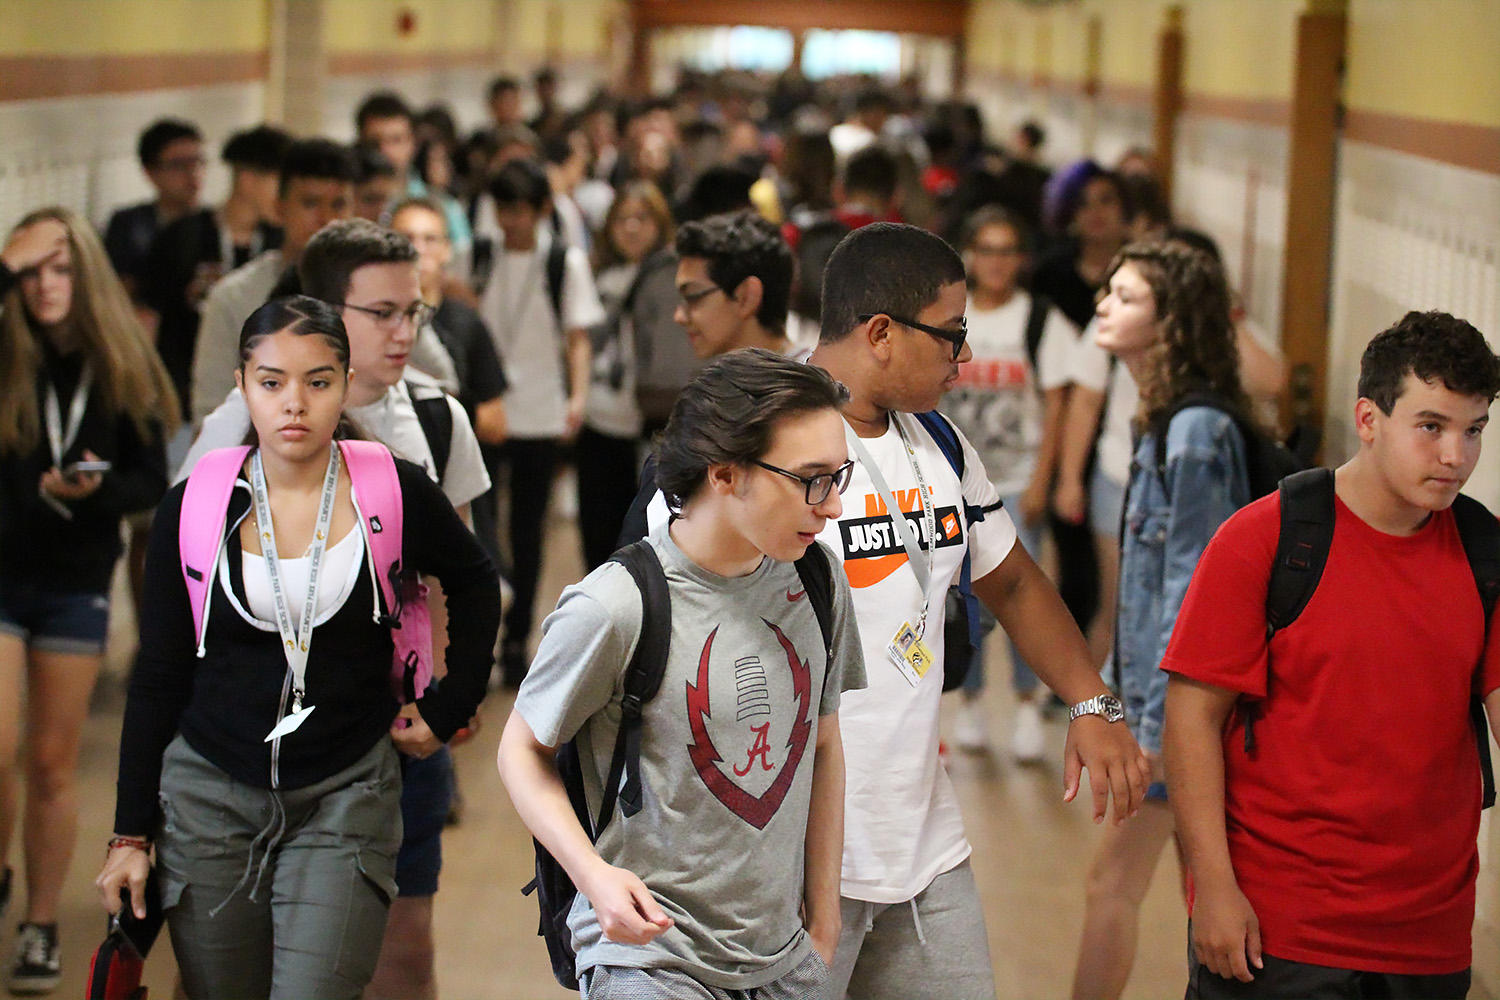 EPHS students fill the hallways on the first day of school, Aug. 14, 2019.